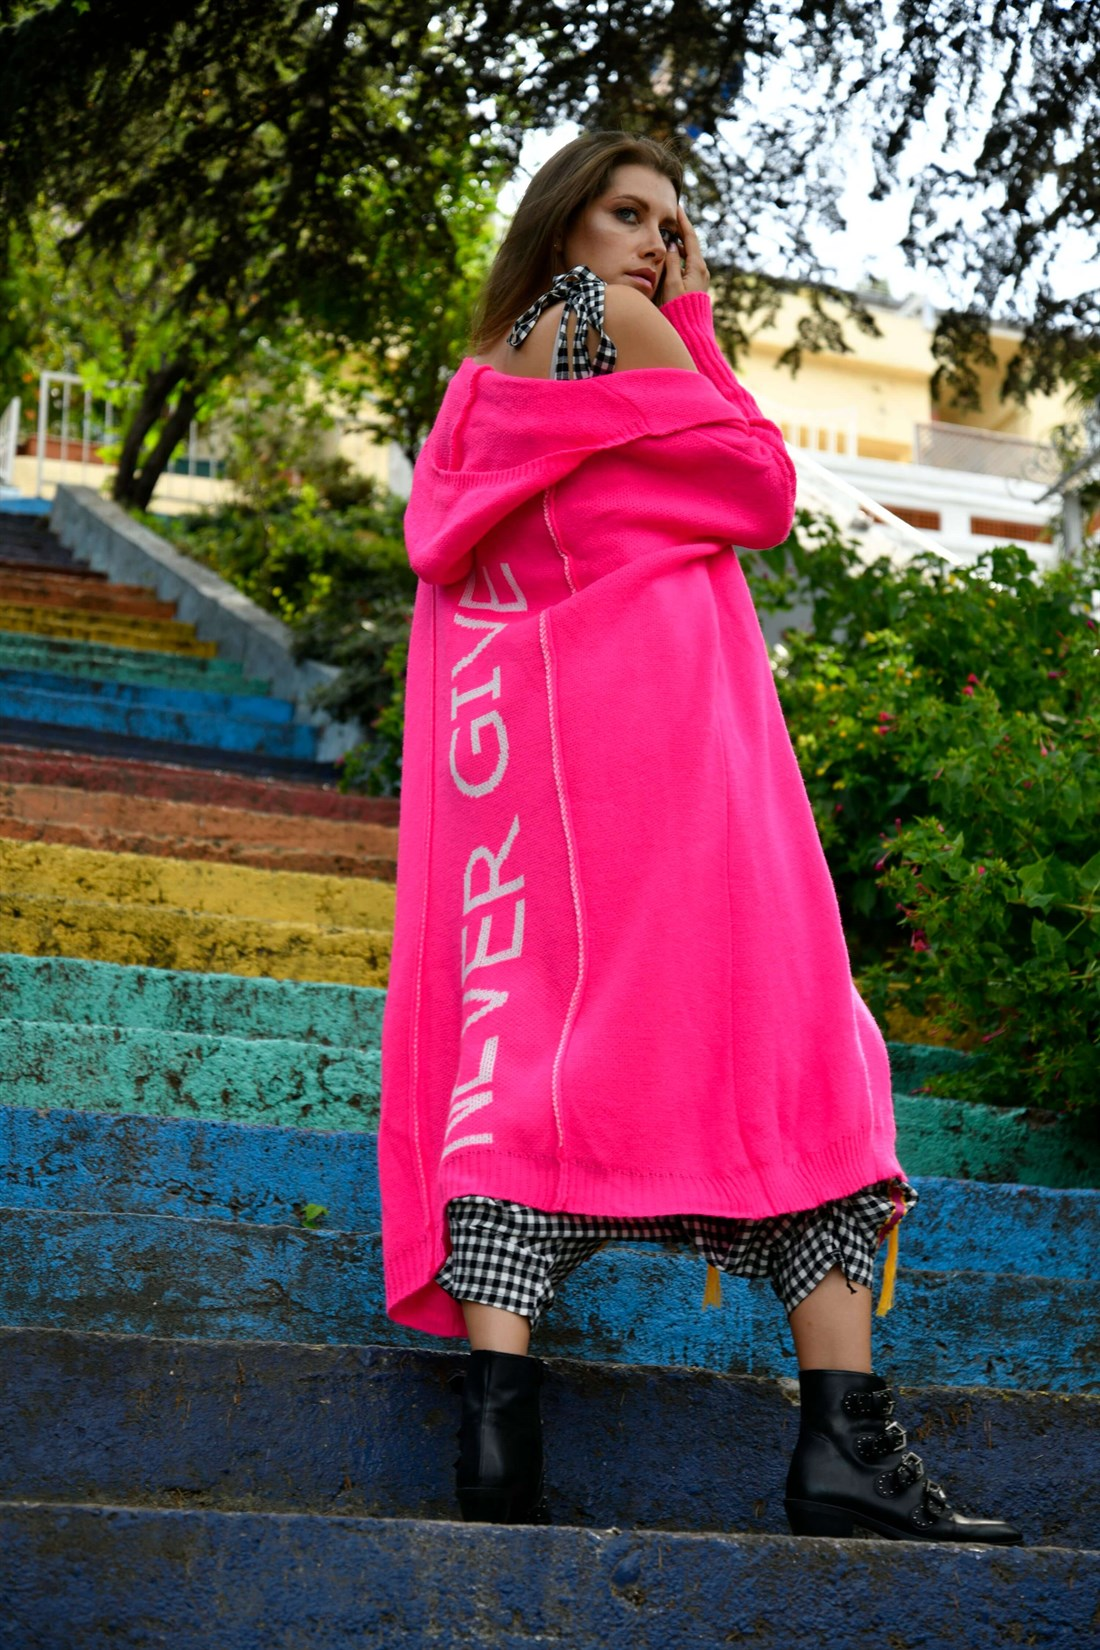 Never Give Up Long Neon Colors Colored Hooded Winter Cardigan 2021 New Fashion High Street Style Women's Clothing enlarge